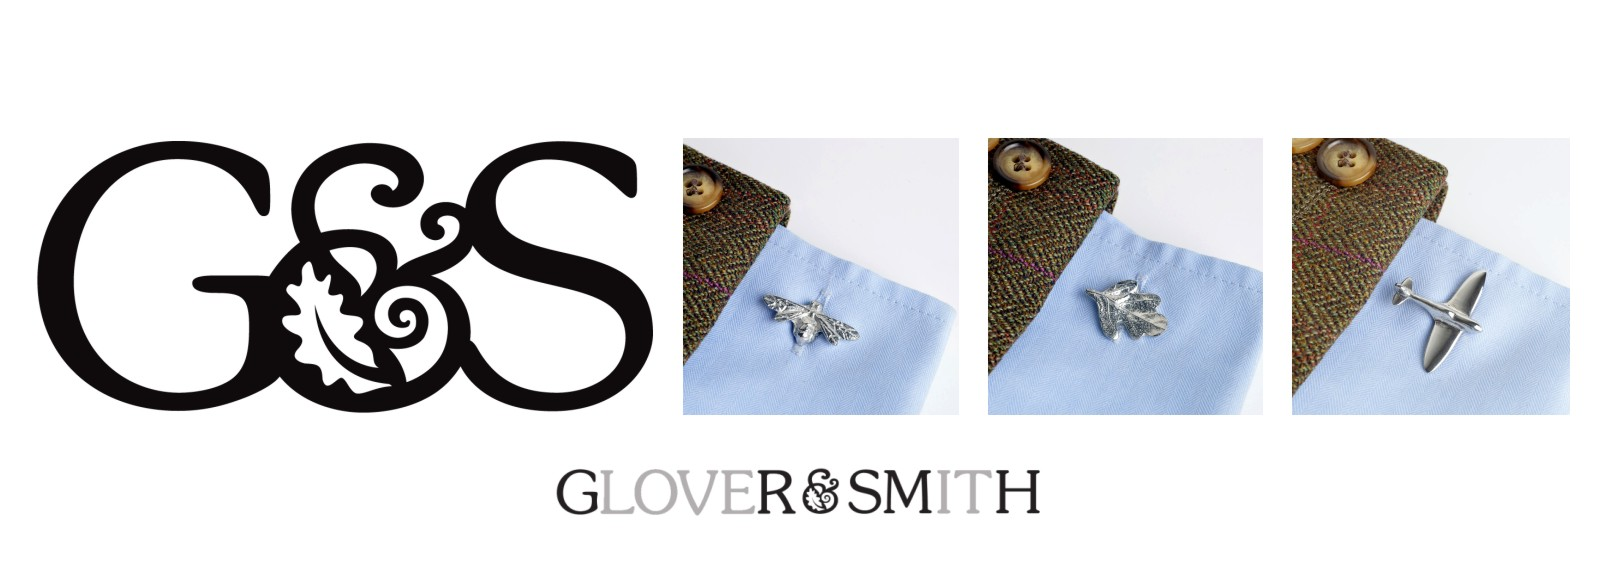 Pewter Cufflinks Jewellery for men UK Handmade Glover and Smith